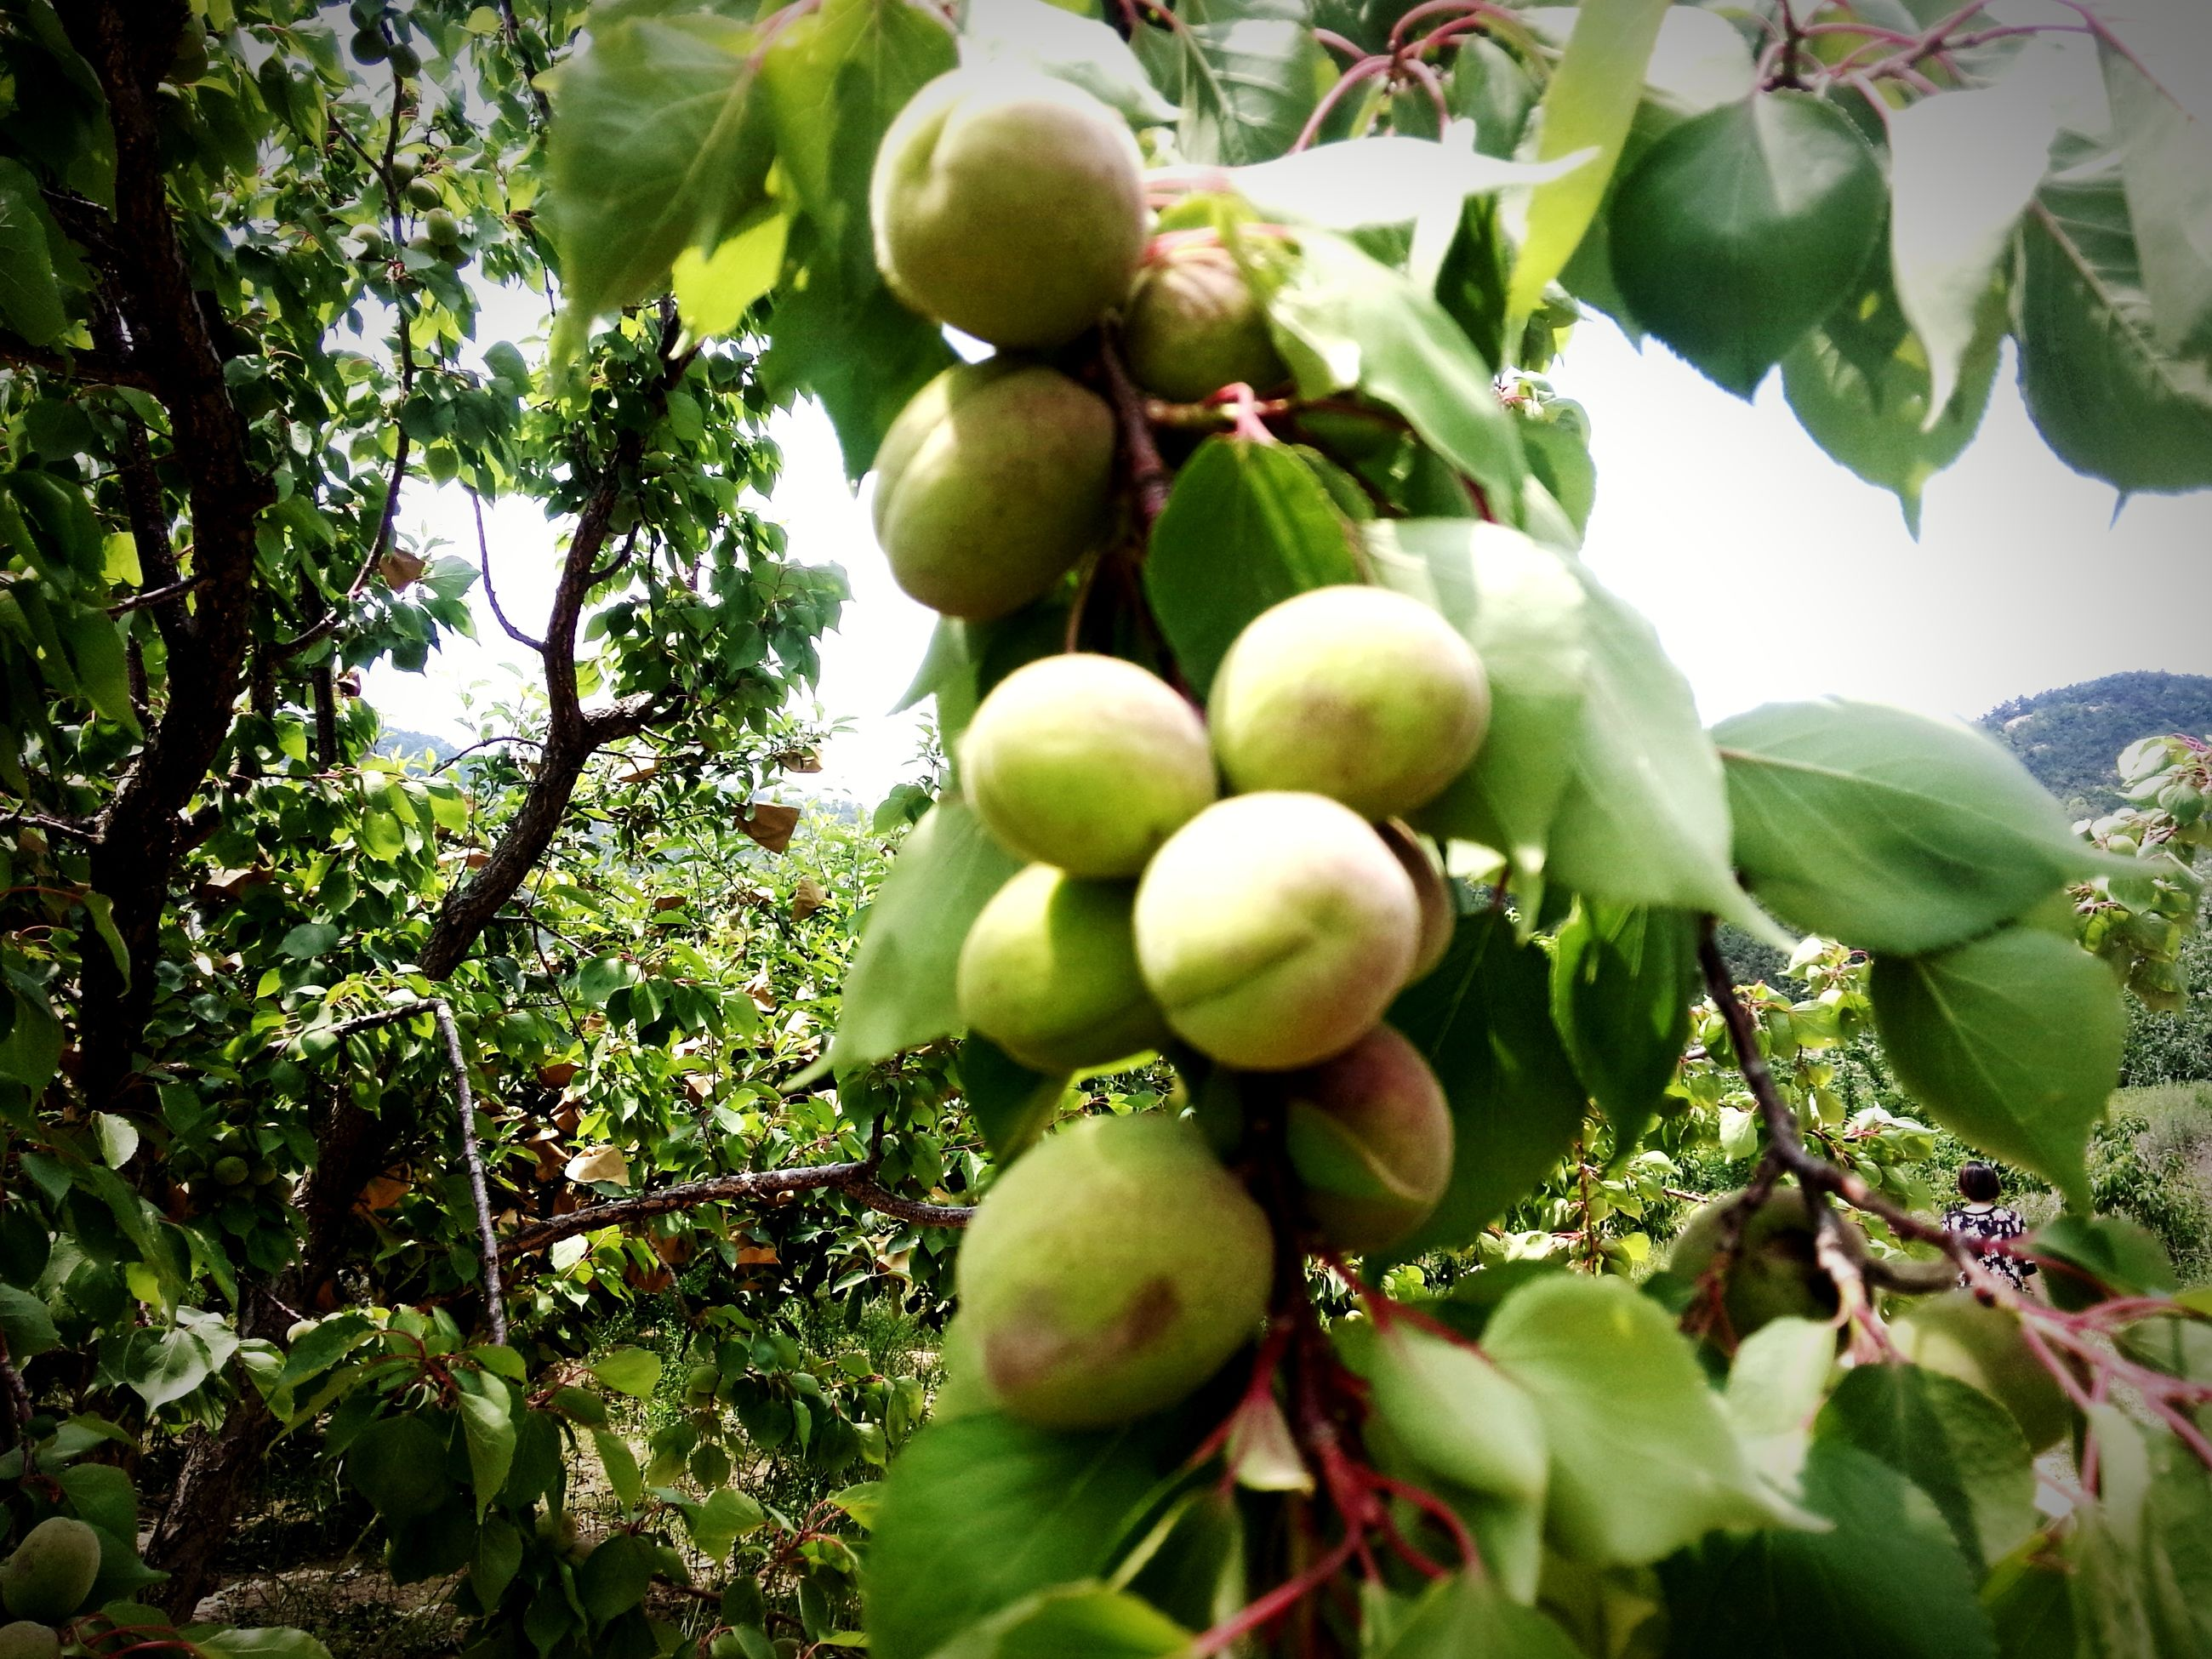 fruit, food and drink, healthy eating, food, tree, green color, freshness, growth, grape, agriculture, vineyard, ripe, hanging, leaf, branch, apple - fruit, apple, bunch, close-up, apple tree